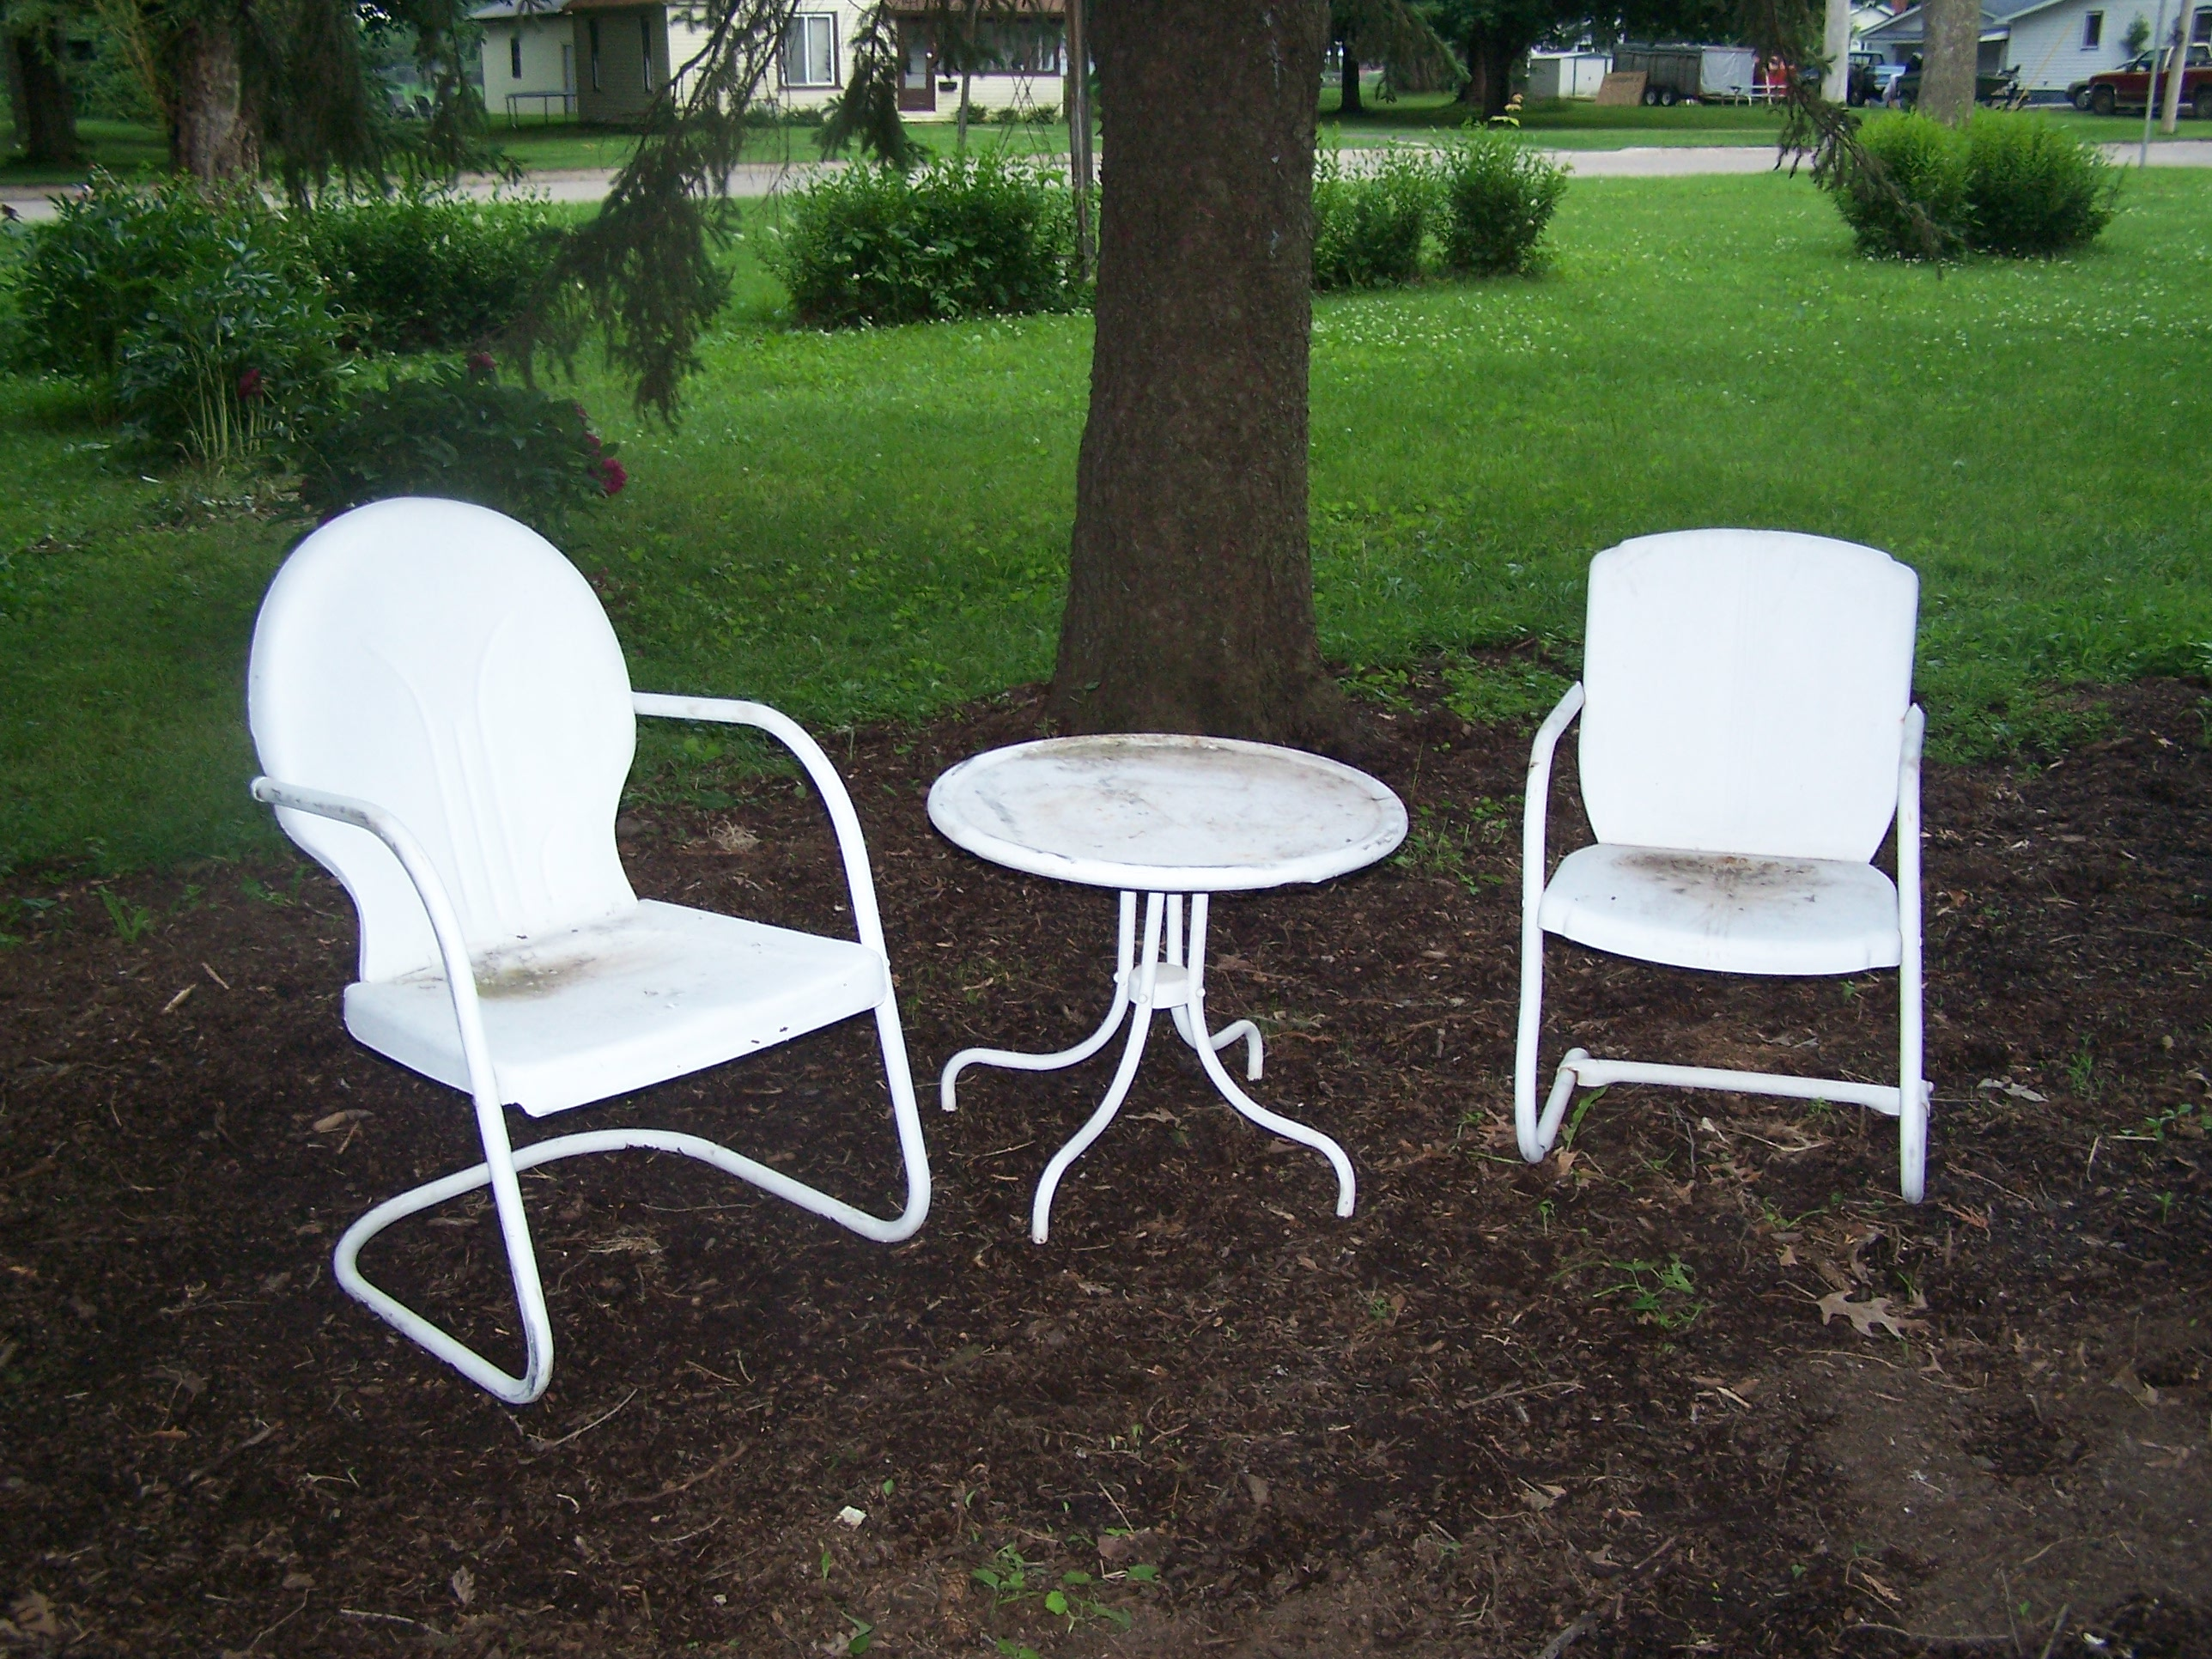 Lawn Chair Paint Project